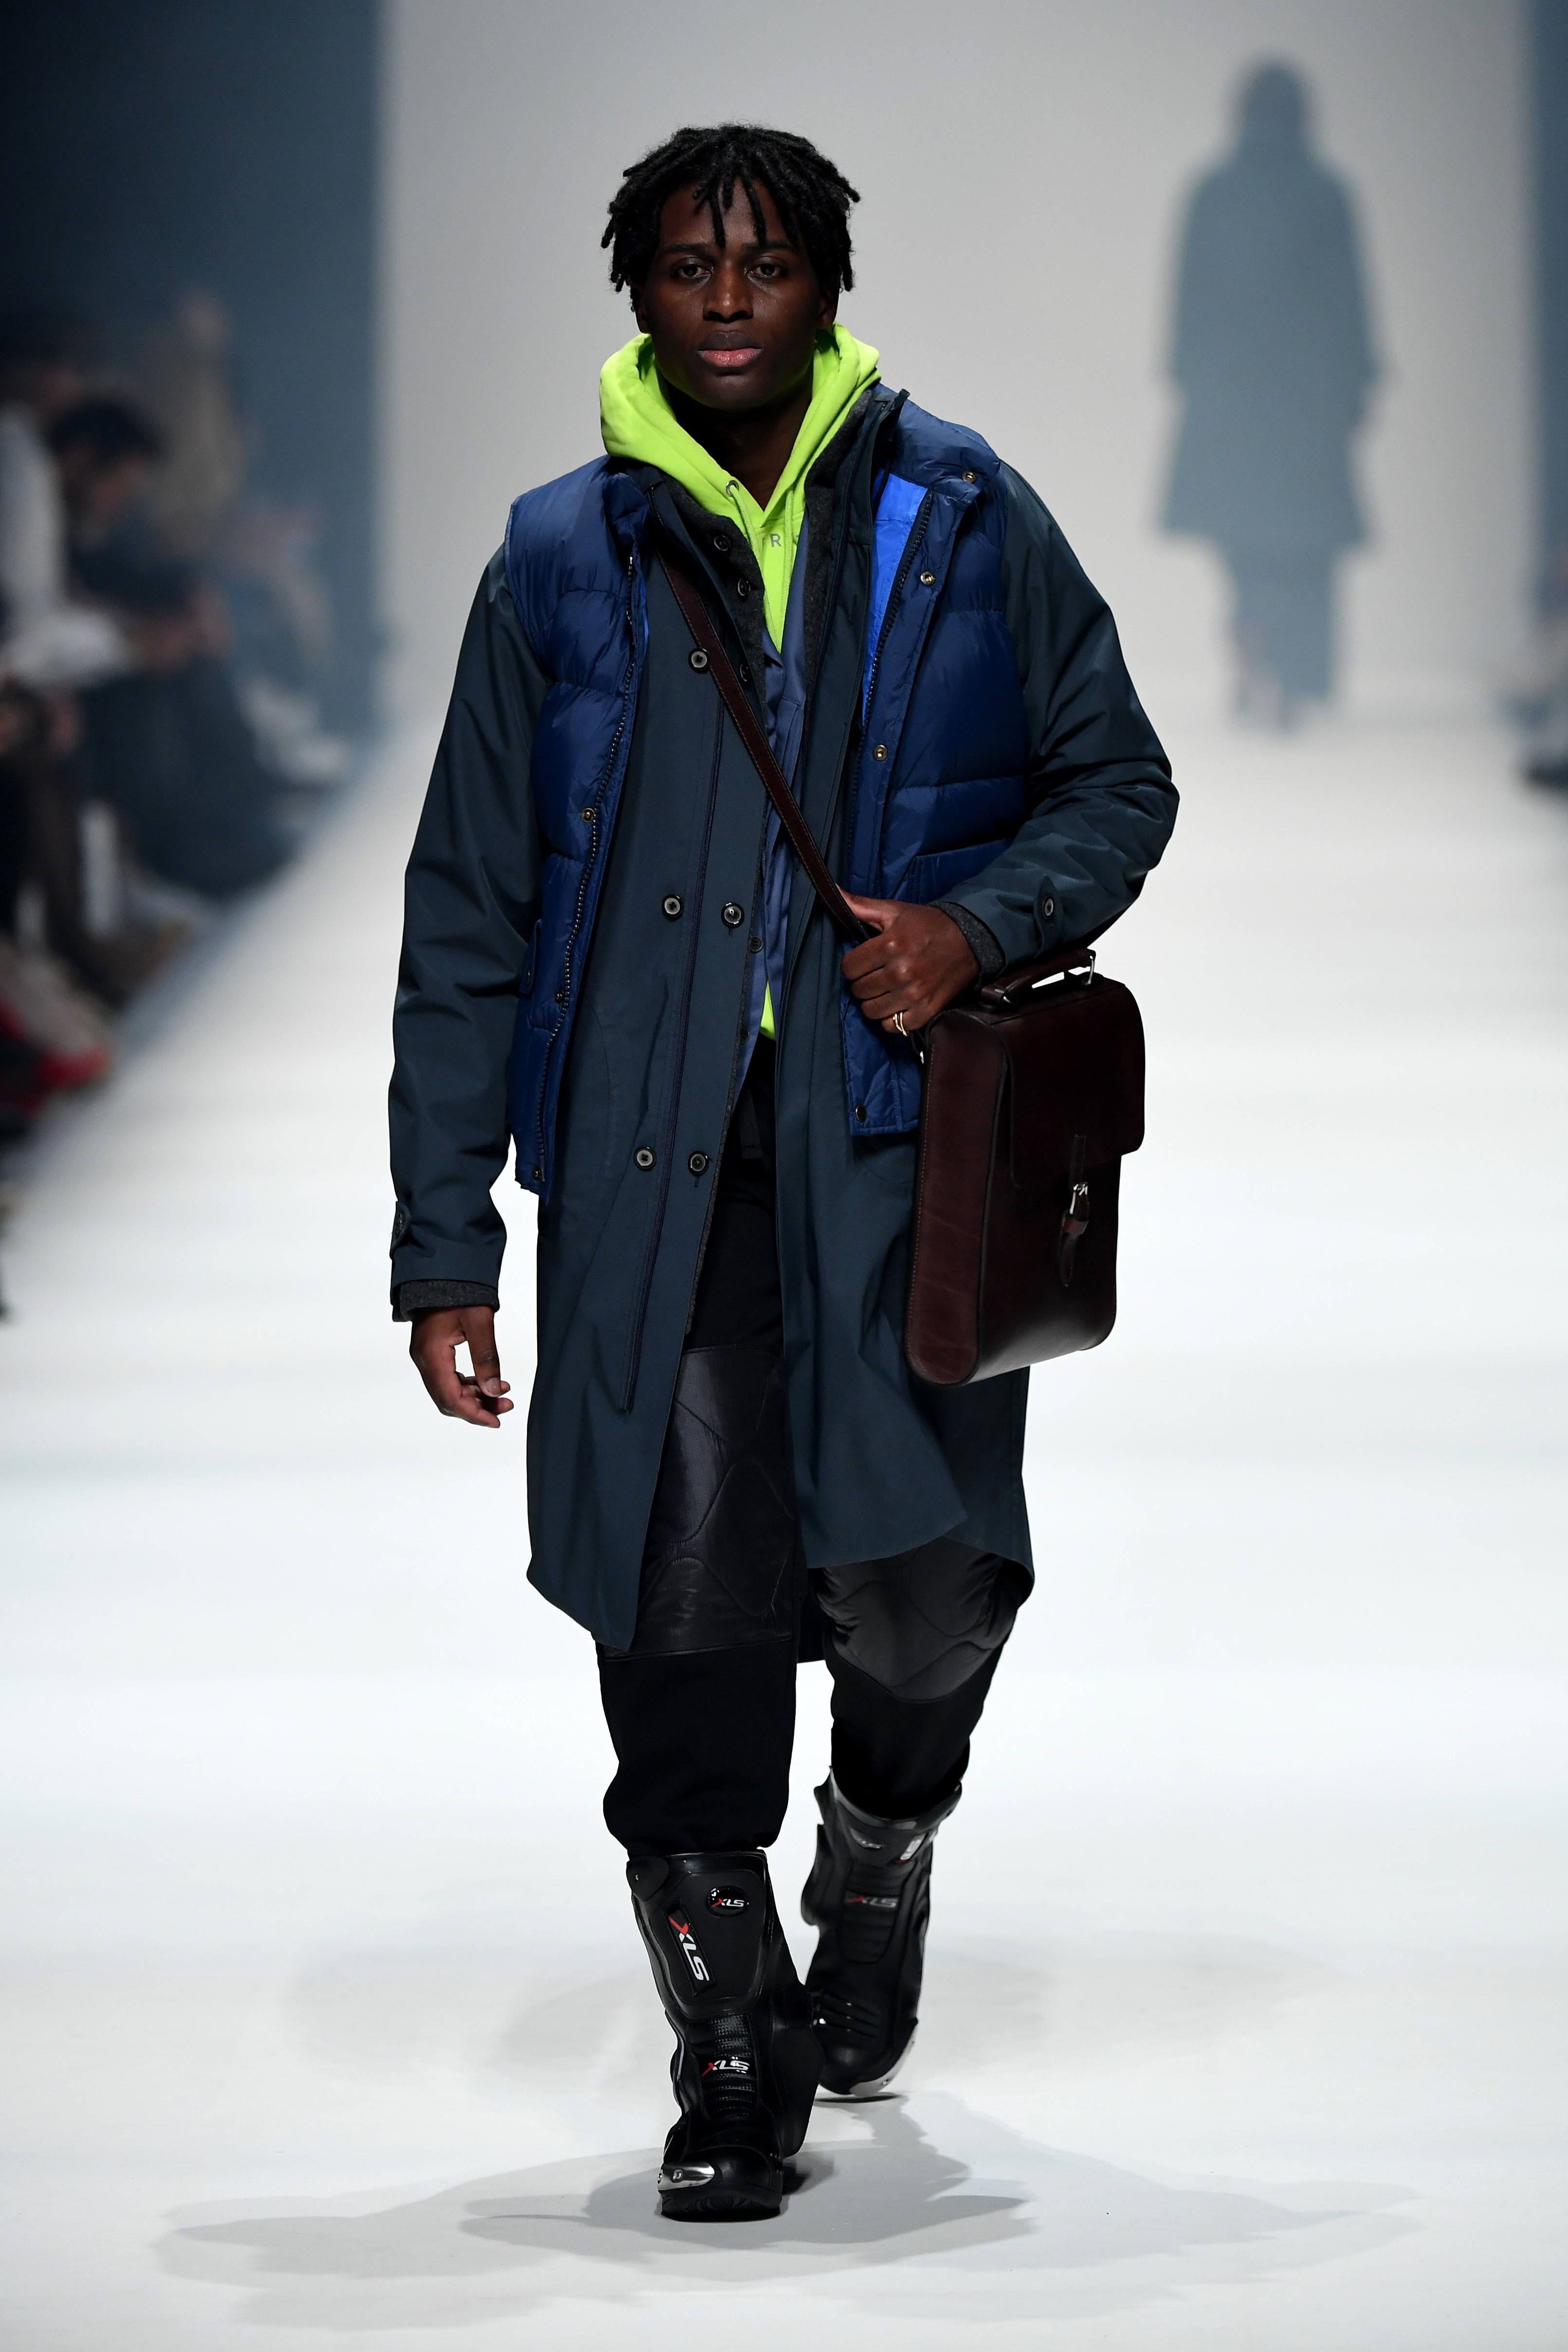 BERLIN, GERMANY - JANUARY 14: A model wearing a coat by Skarabeos, vest by Fjaellraeven, blazer by Brachmann, hoodie by Reer 3, trousers by Timberland, bag by Ackermann, rings by Mies Nobis and shoes by Biker-Zone walks the runway at the Neonyt show during Berlin Fashion Week Autumn/Winter 2020 at Kraftwerk Mitte on January 14, 2020 in Berlin, Germany. (Photo by John Phillips/Getty Images for MBFW)